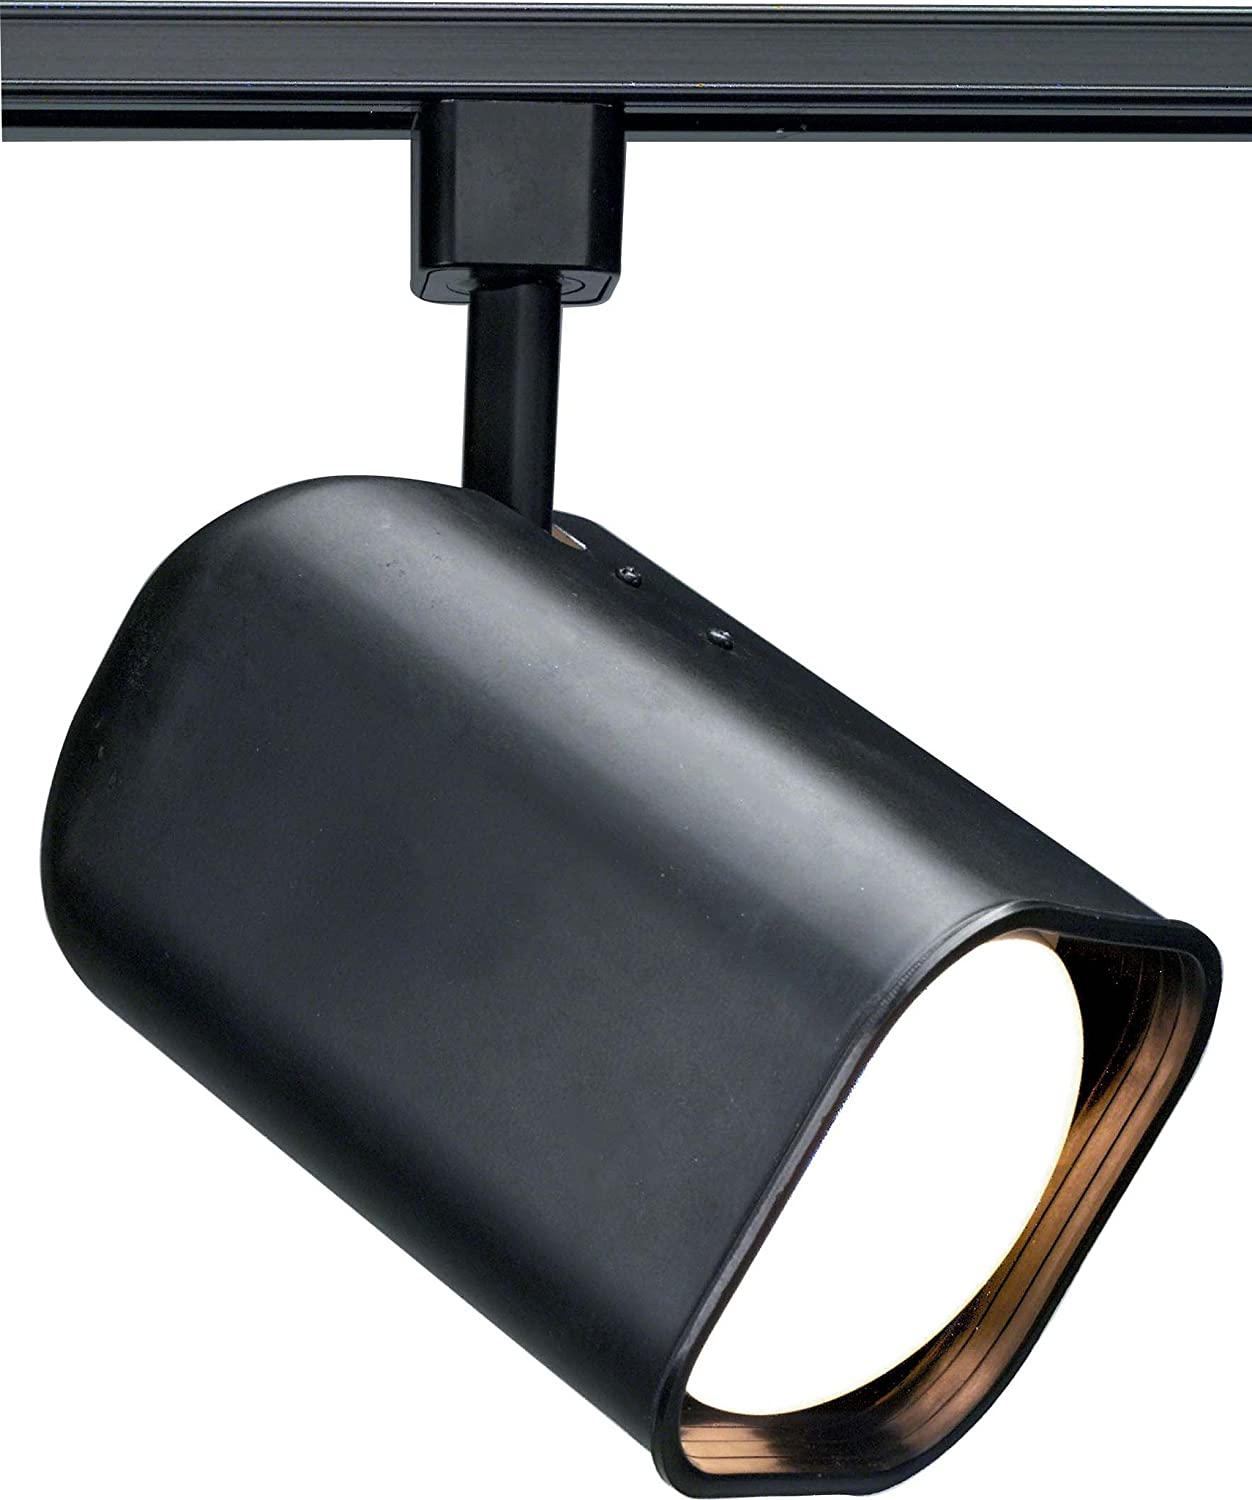 Nuvo lighting th226 universal holder track lighting heads amazon aloadofball Image collections